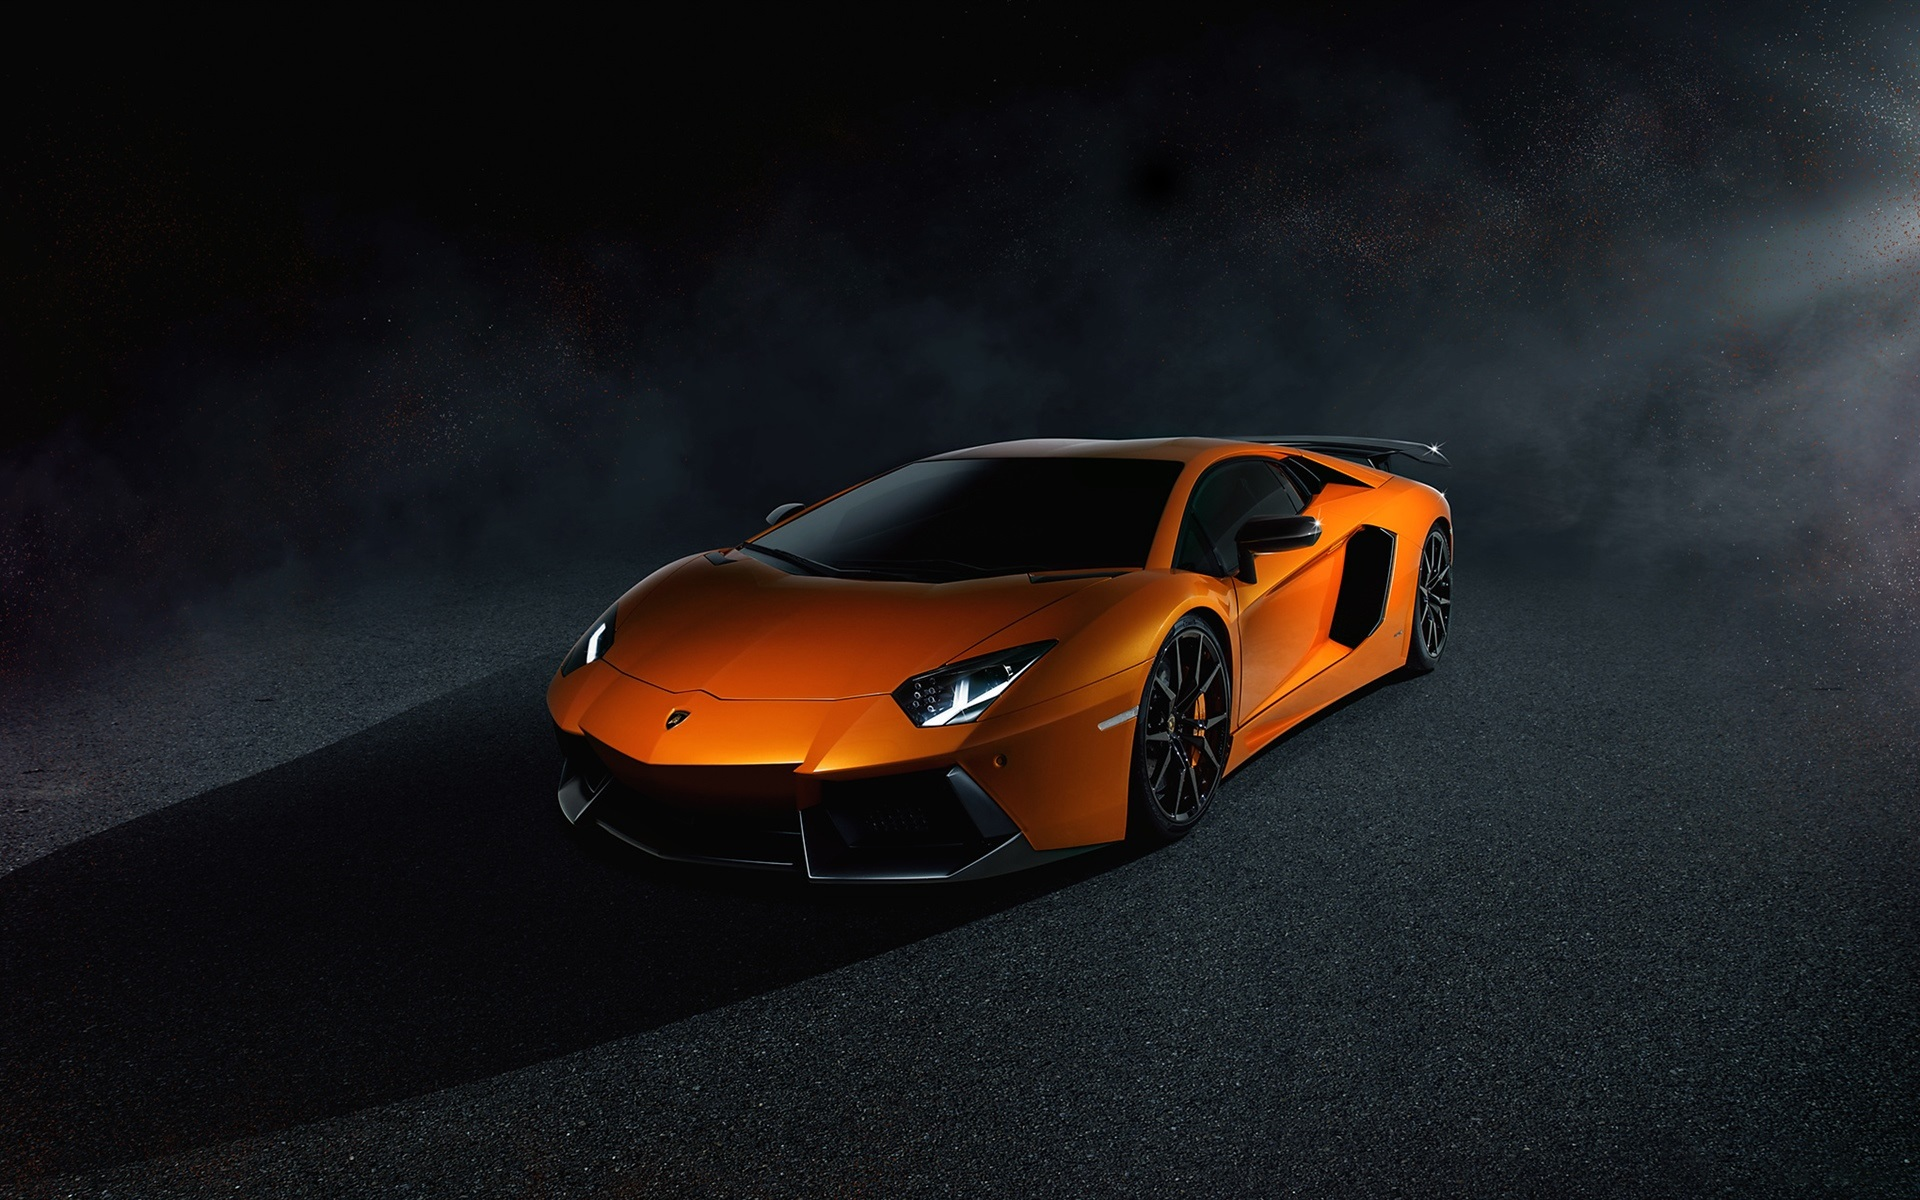 Best Wallpaper Night Lamborghini - Lamborghini-Aventador-LP700-4-orange-supercar-night-light_1920x1200  Pictures-33562.jpg